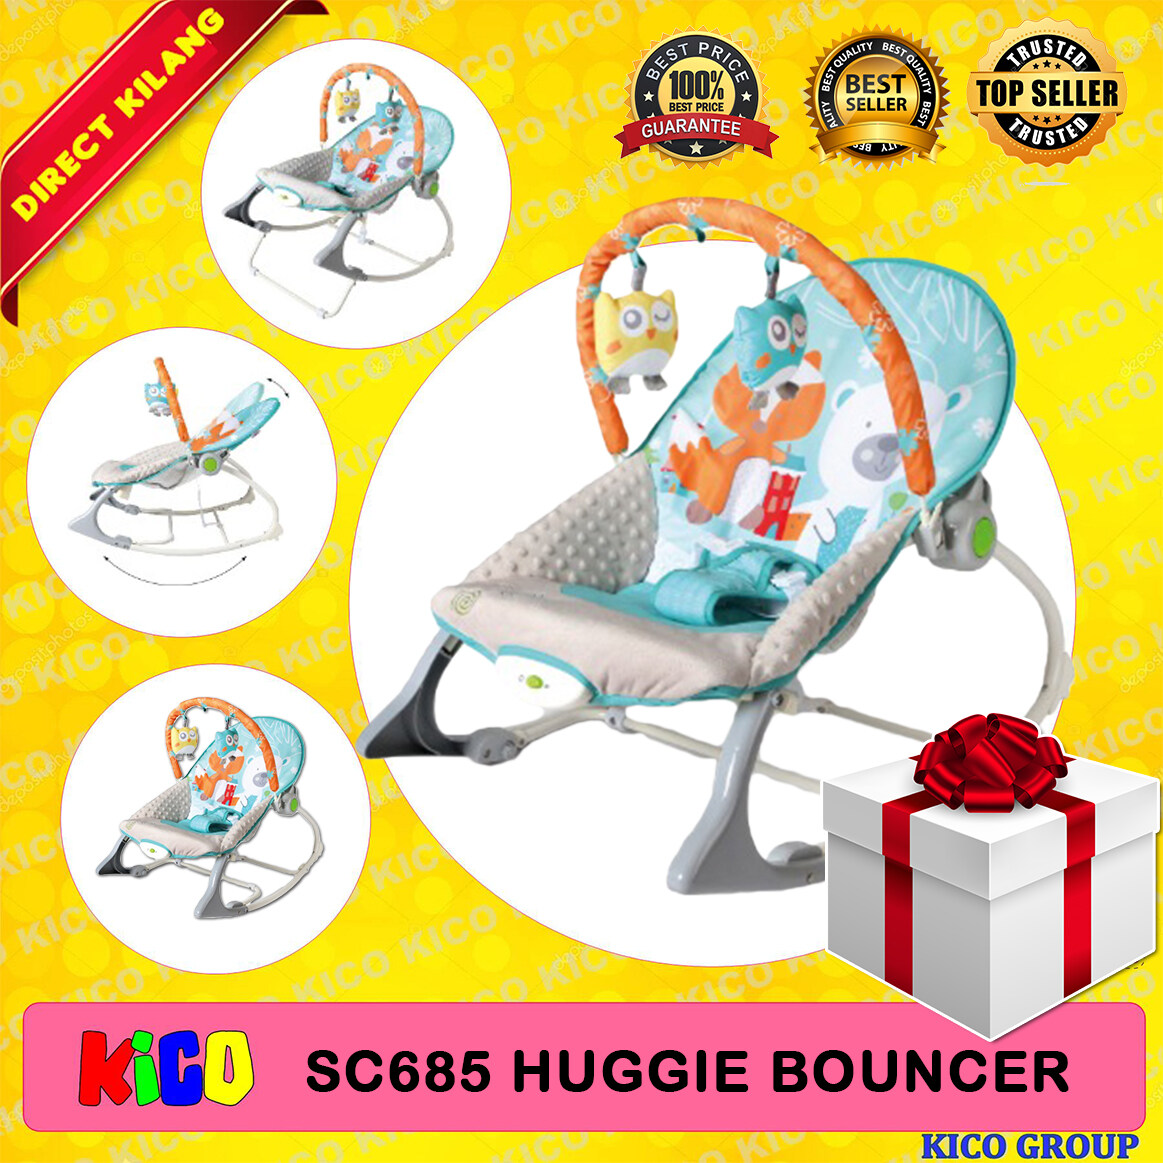 ⚡ SPECIAL FREE GIFT ⚡ Sweet Cherry SC685 Huggie Bouncer (Auto)